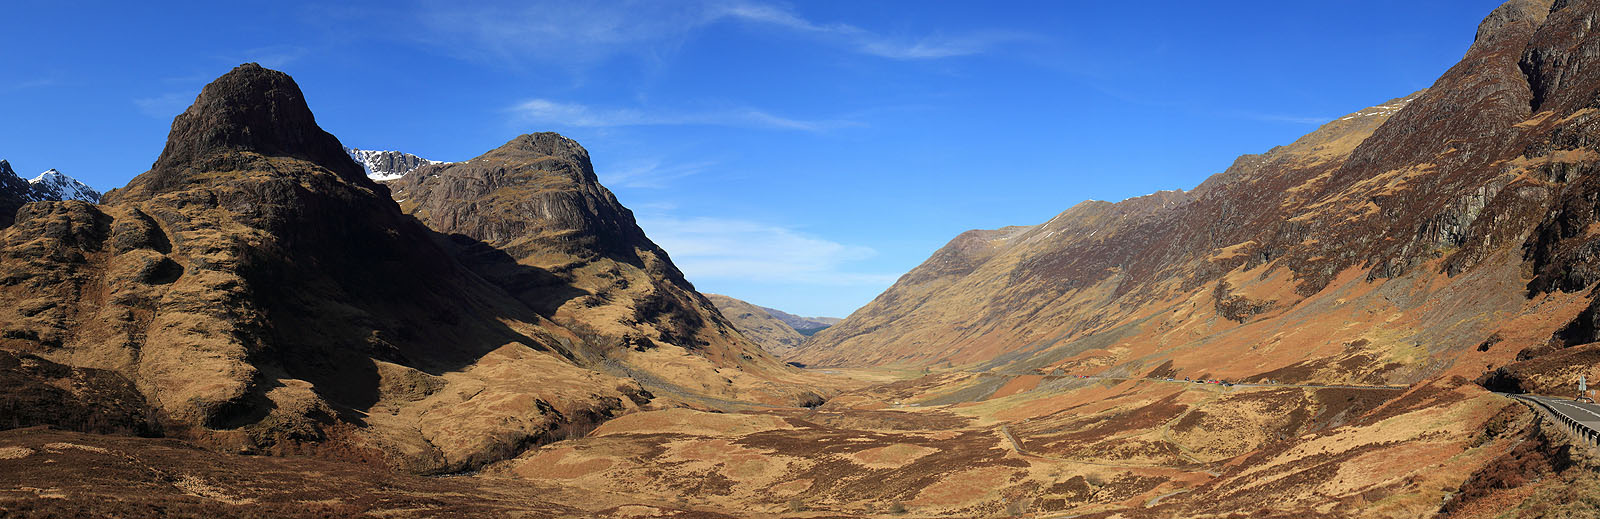 GLCOE001 : Glencoe, West Highlands, Scotland